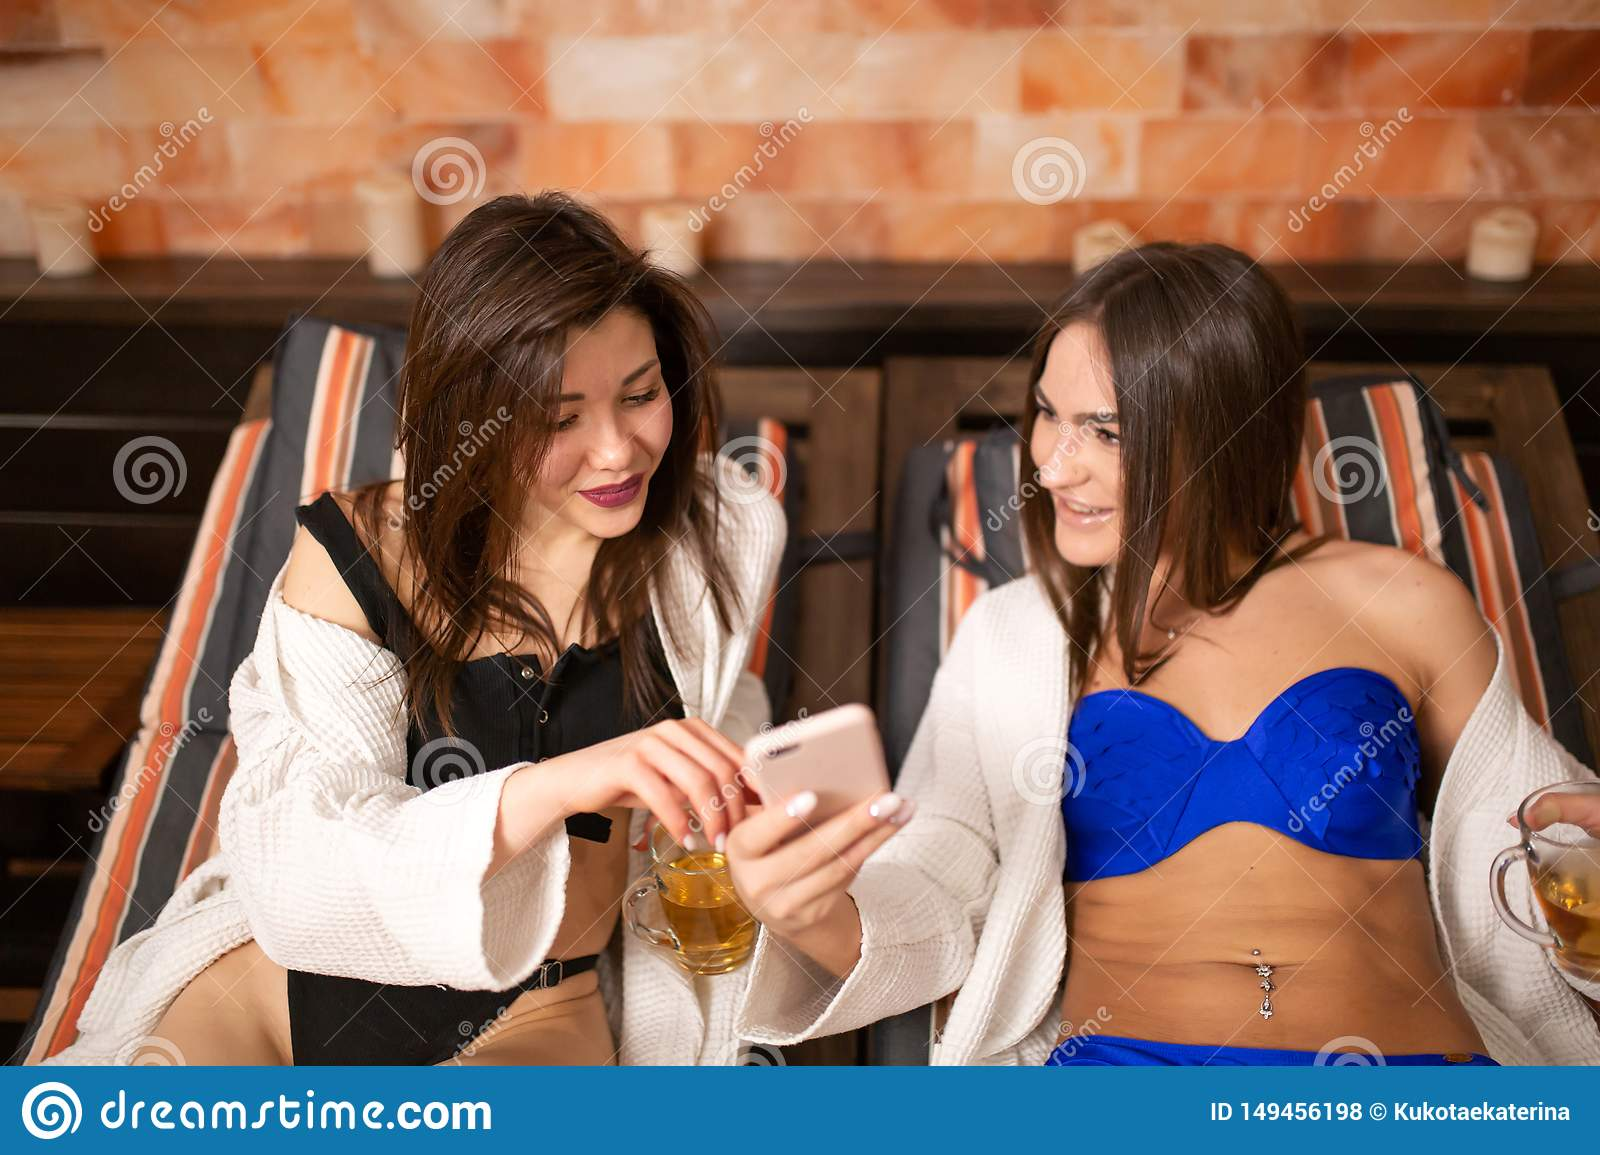 Two beautiful young girls in swimsuits lay on wooden lounger in the sauna are discussing the news while looking into the phone